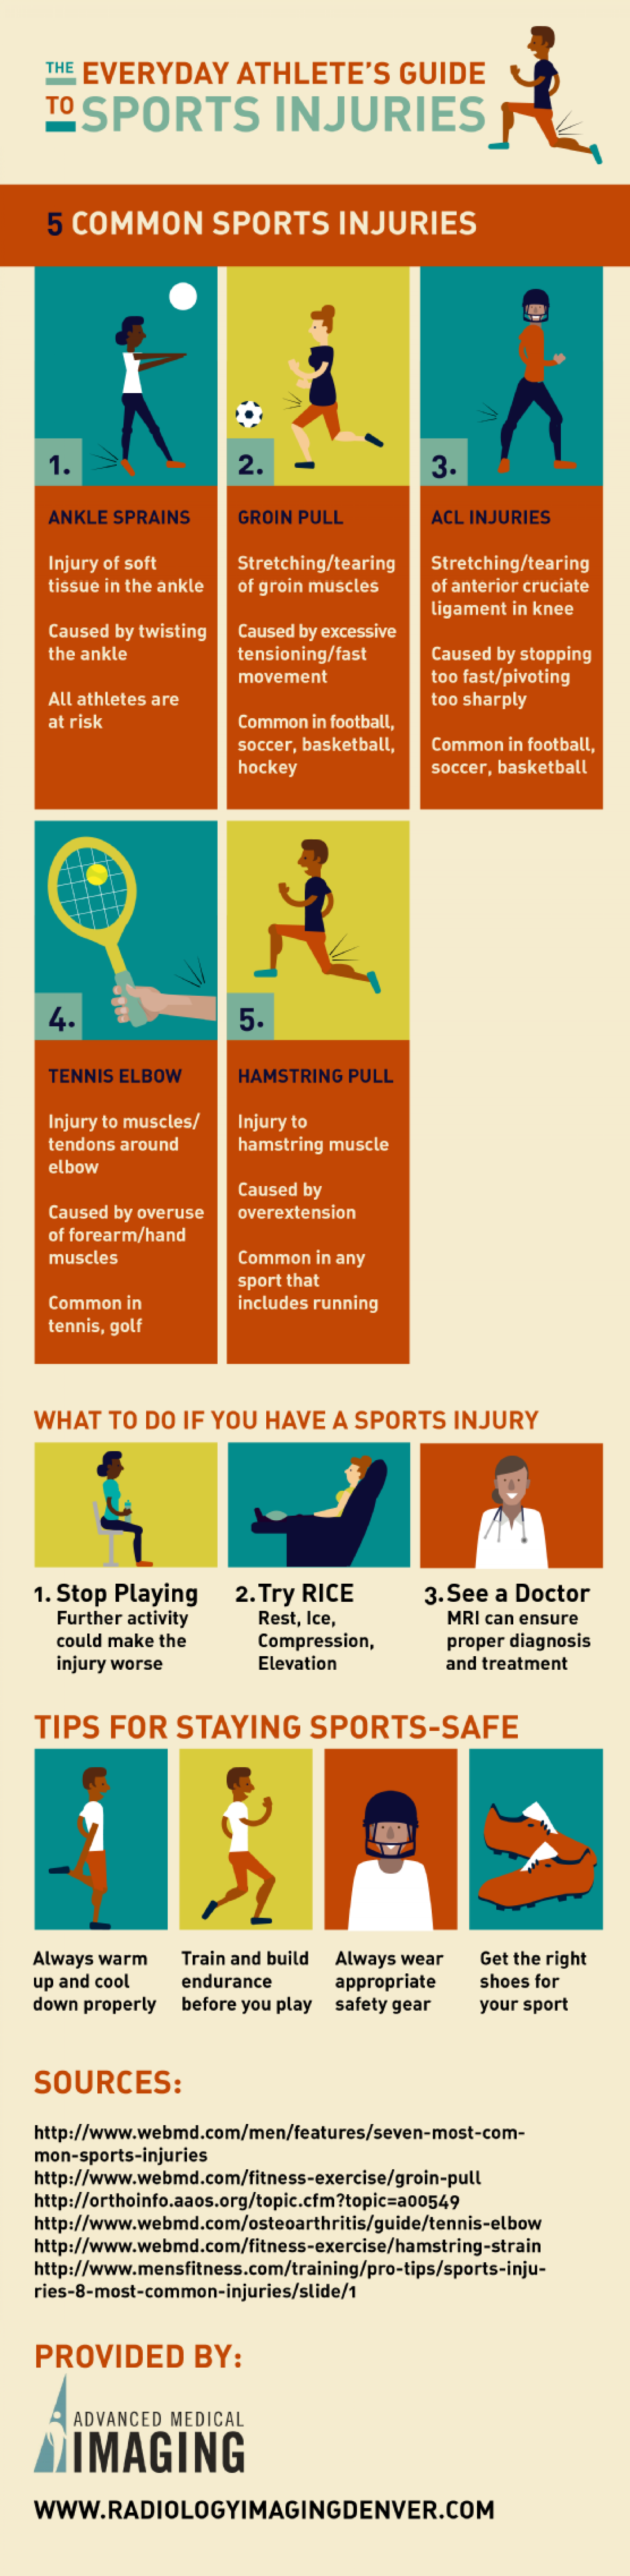 The Everyday Athlete's Guide to Sports Injuries Infographic